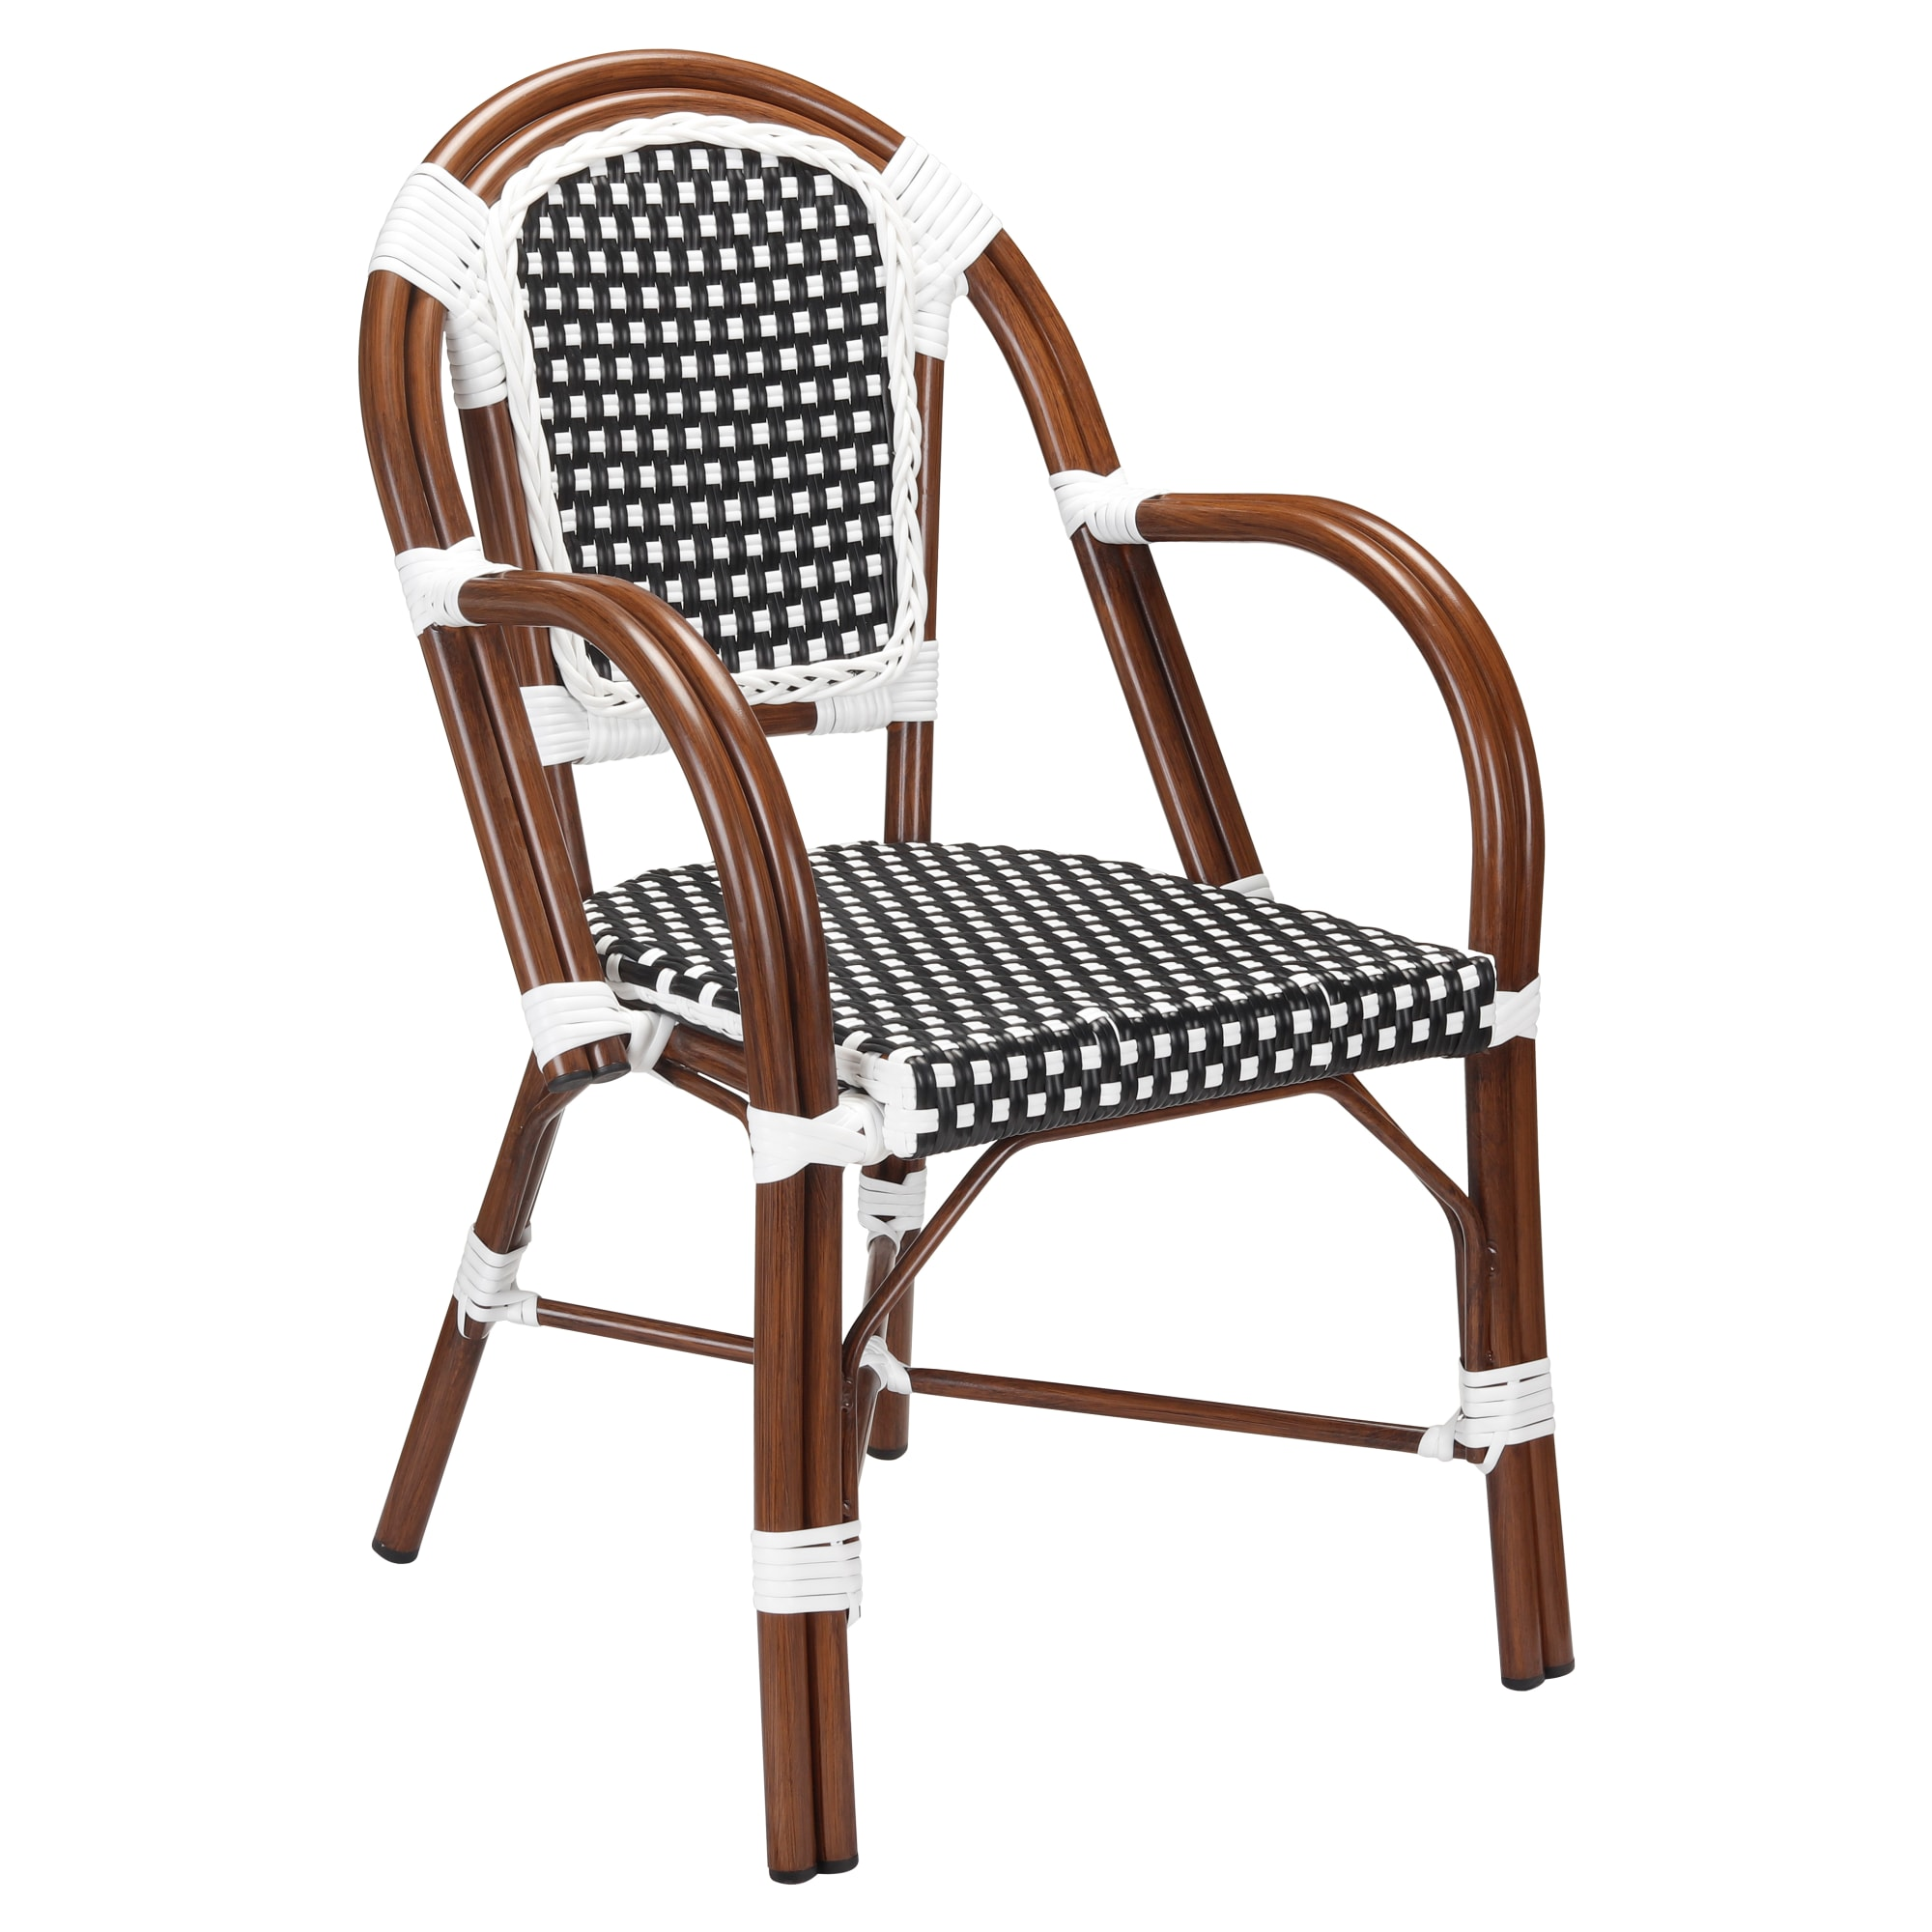 Patio Armchair With Black & White Rattan Walnut Finish